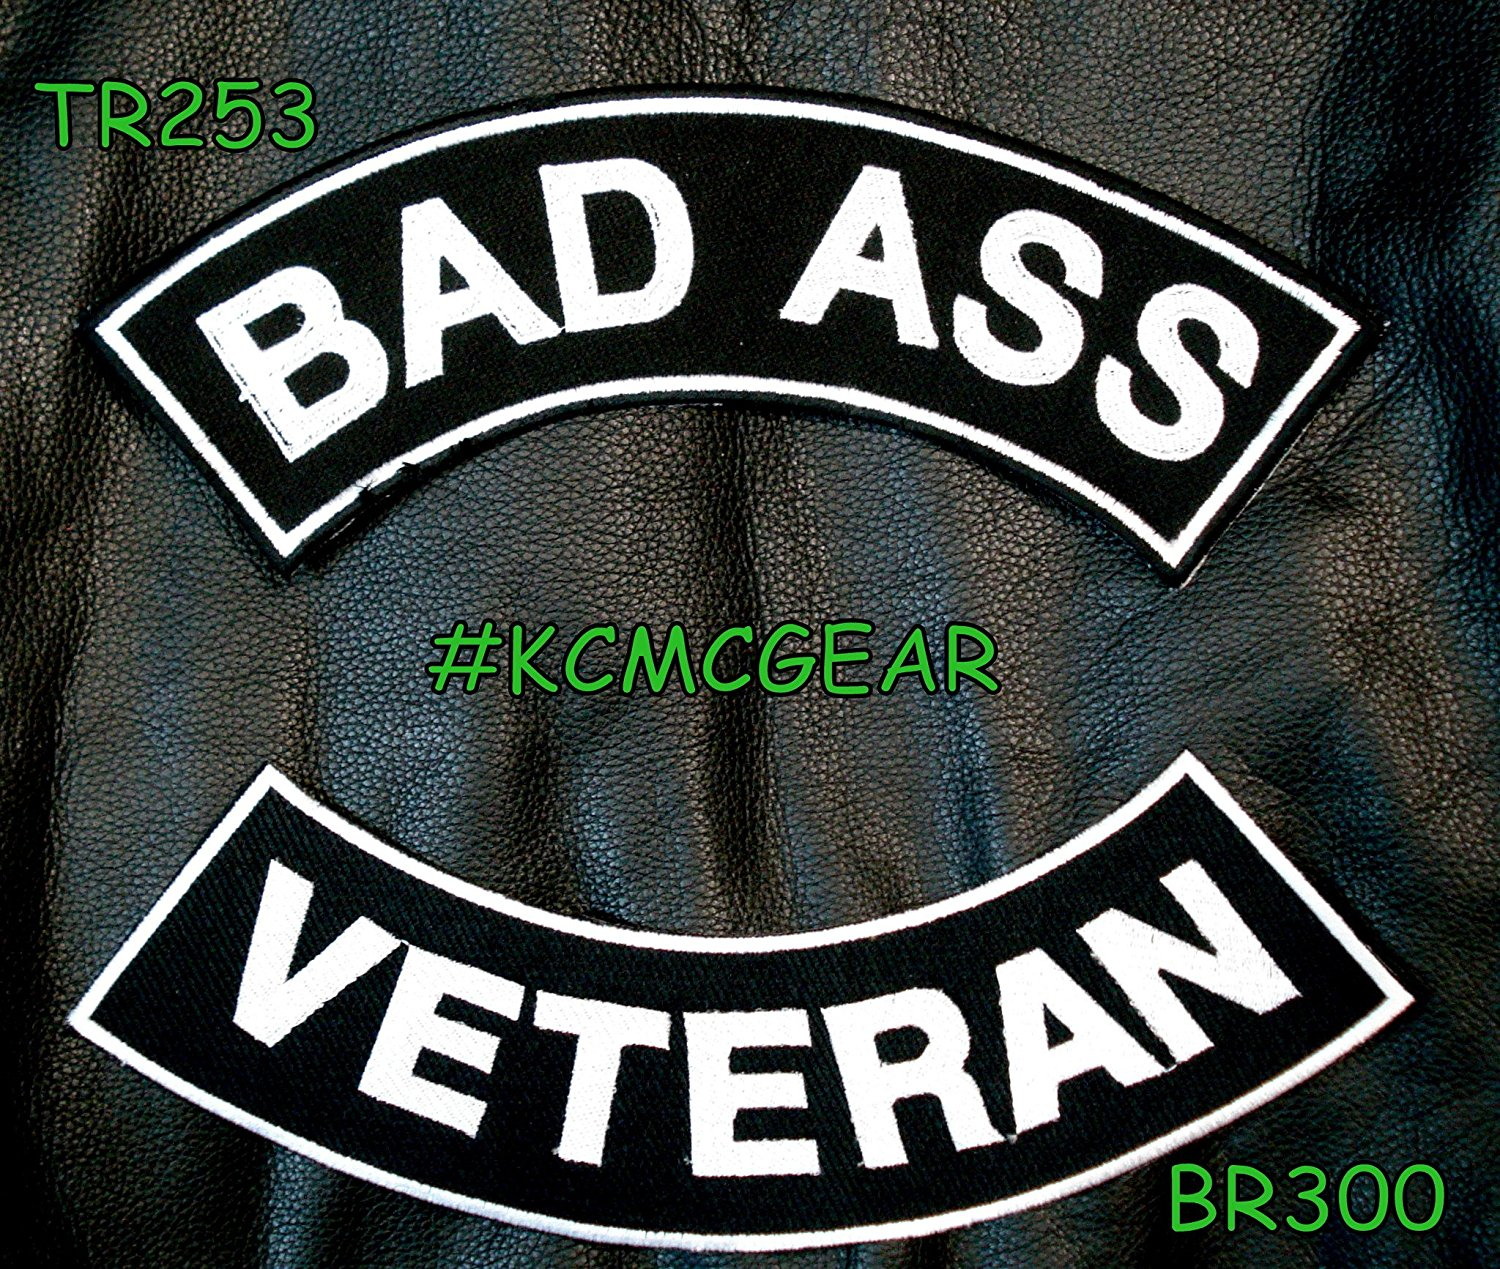 Military Biker Patch Set Bad Ass Veteran Embroidered Patches Sew on Patches for Jackets